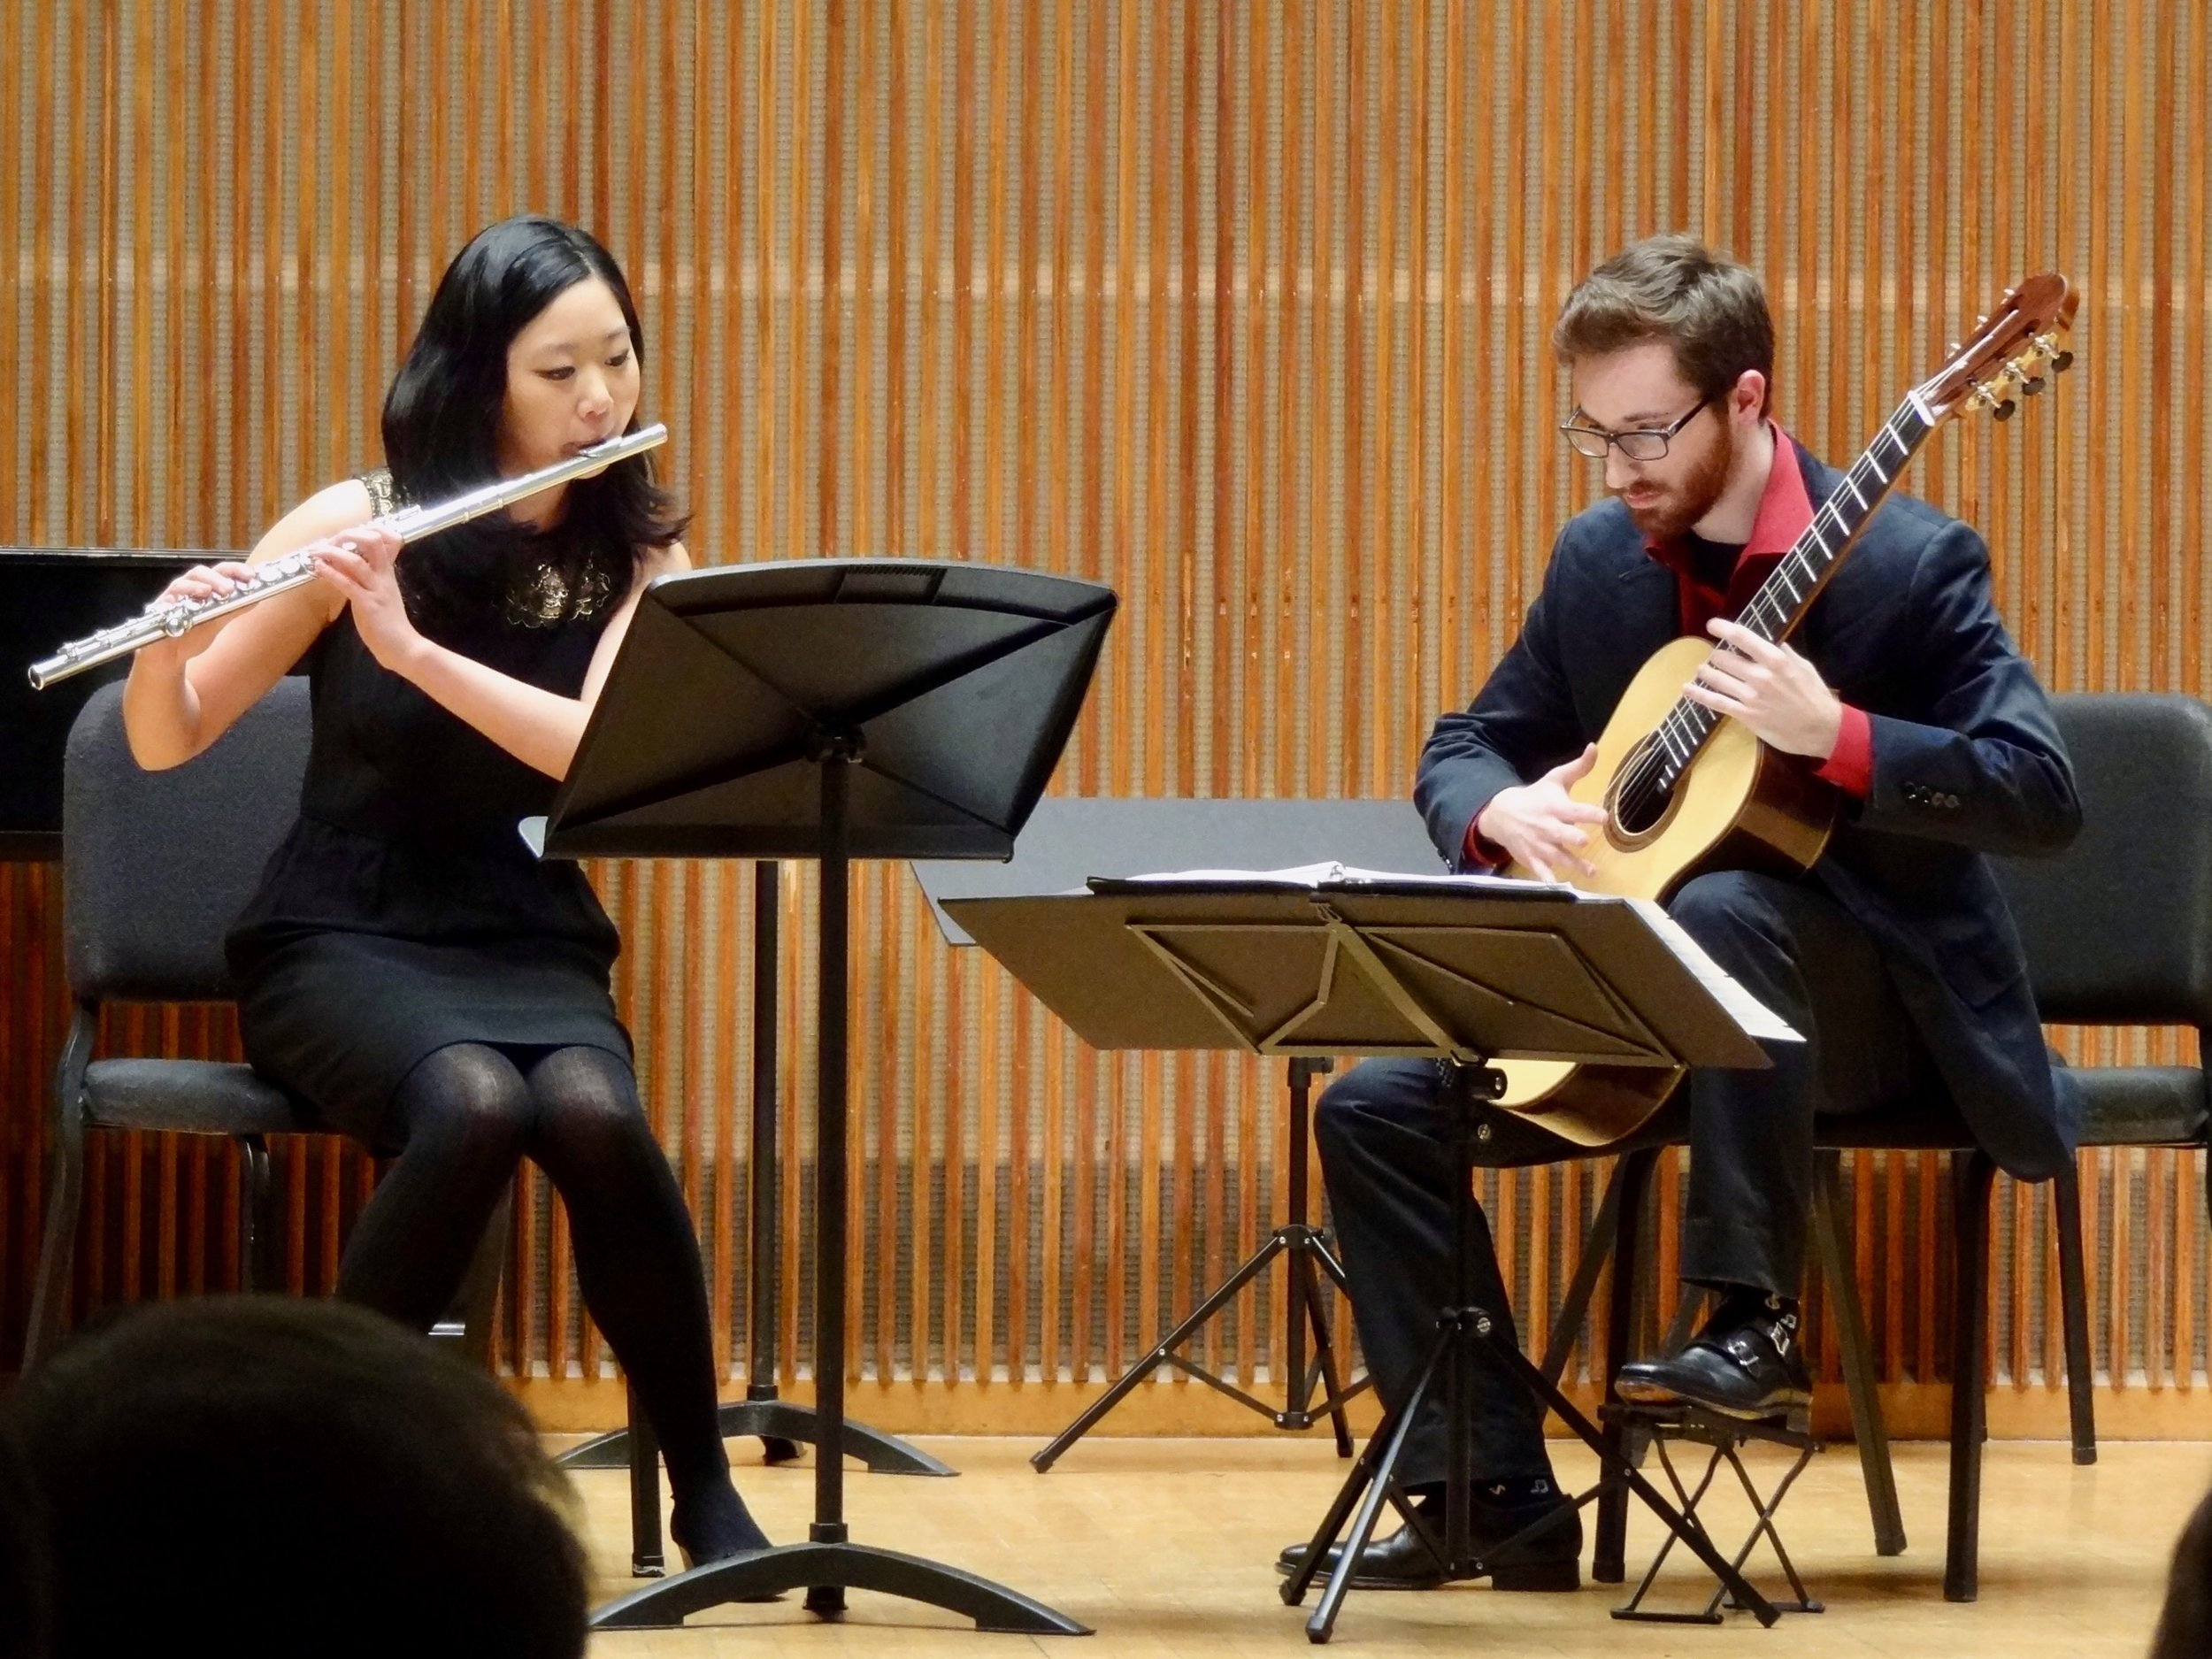 Finally, Katie Kim and Brian King played the amazing Ourkouzounov Sonatine, complete with singing through the flute, the guitarist tapping and singing along, and sundry whoops, screams and hollers, all in 5/8 an 7/8. It was great!